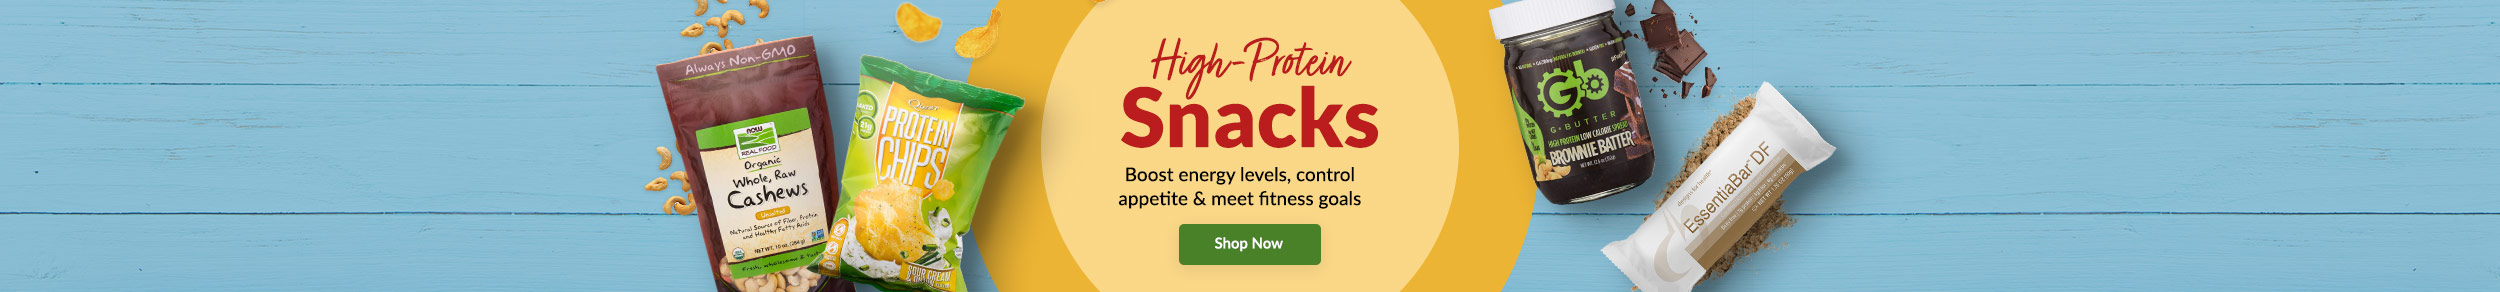 https://i3.pureformulas.net/images/static/Protein-Pack-Snacks_slide3_061918.jpg